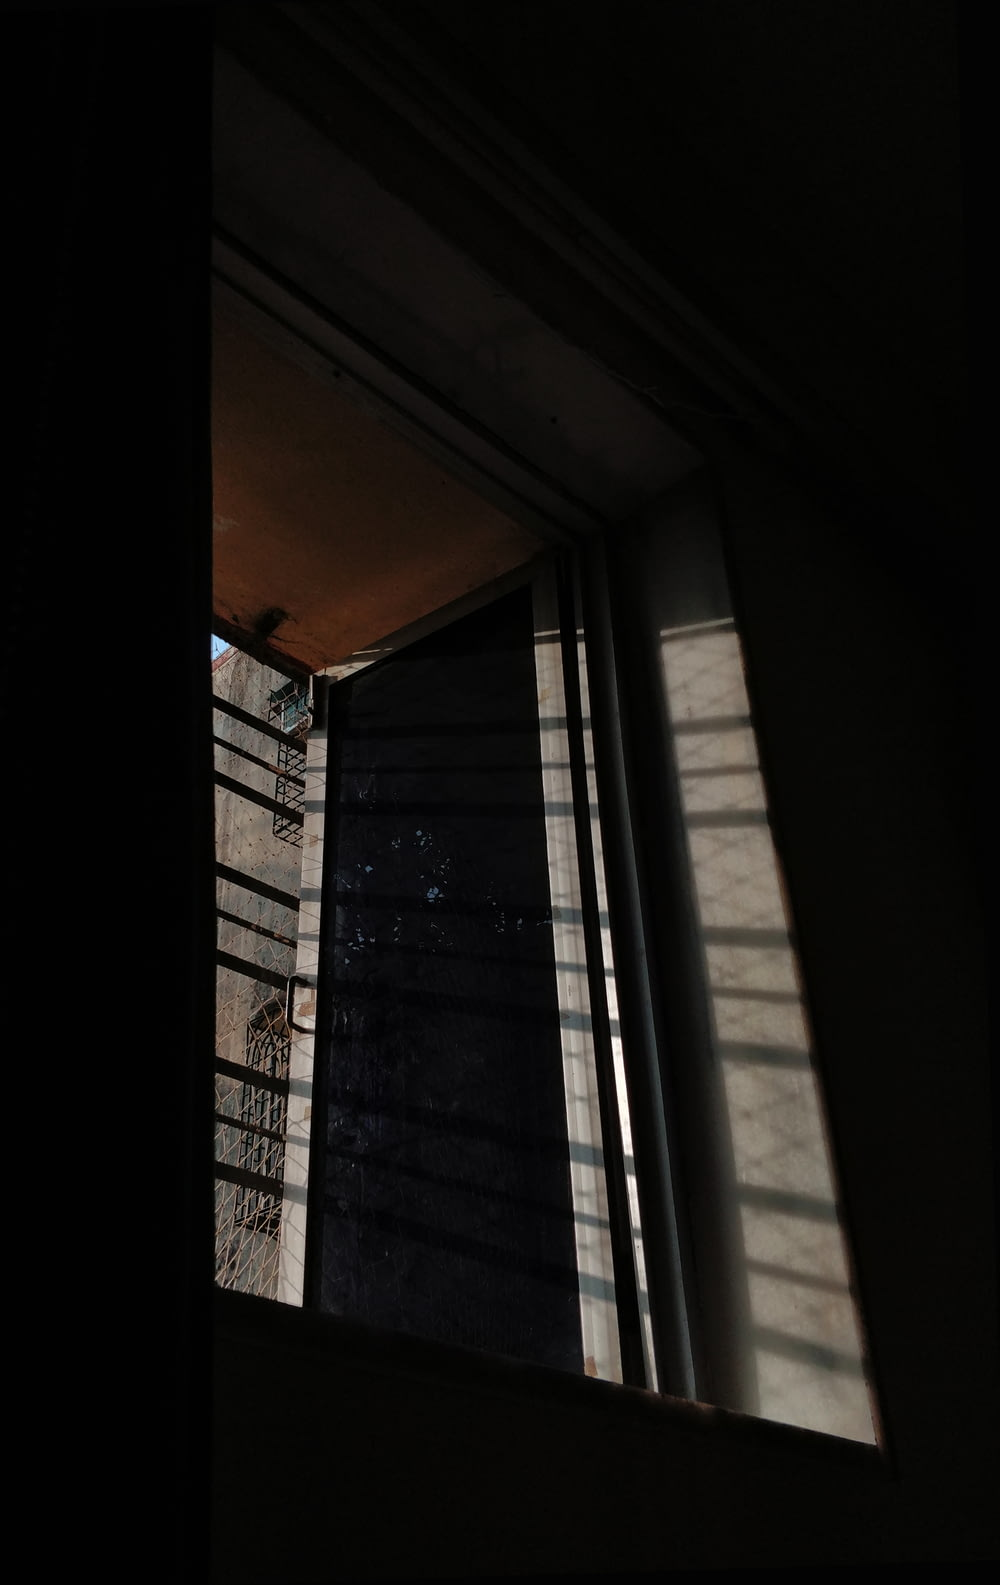 view of glass window with shadow